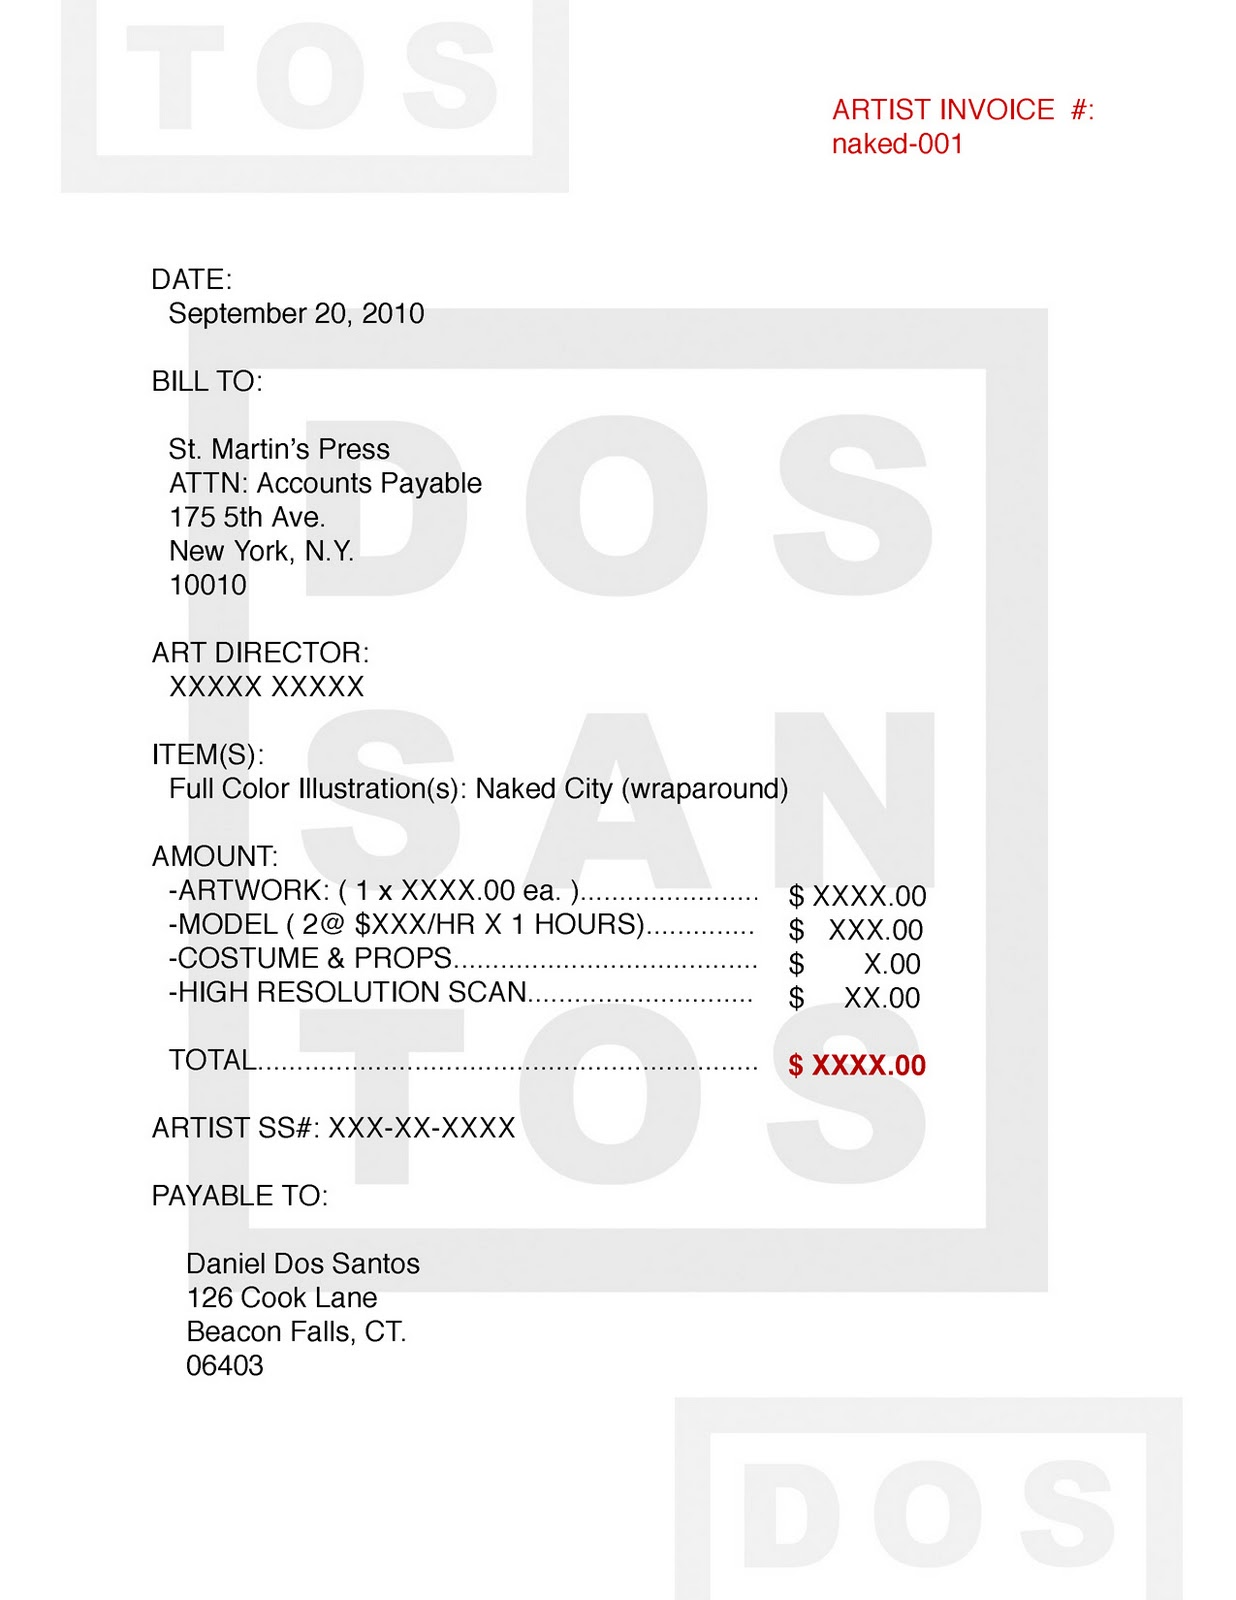 Shopdesignsus  Winning Muddy Colors Invoices With Lovable I Believe That This Format Contains All The Pertinent Information That A Good Invoice Should Have And Can Serve As A Decent Template For Your Own With Appealing Paypal Fee Invoice Also  Toyota Sienna Xle Invoice Price In Addition Drupal Commerce Invoice And Invoice For Professional Services As Well As Free Invoice Creator Online Additionally Invoice Photography From Muddycolorsblogspotcom With Shopdesignsus  Lovable Muddy Colors Invoices With Appealing I Believe That This Format Contains All The Pertinent Information That A Good Invoice Should Have And Can Serve As A Decent Template For Your Own And Winning Paypal Fee Invoice Also  Toyota Sienna Xle Invoice Price In Addition Drupal Commerce Invoice From Muddycolorsblogspotcom